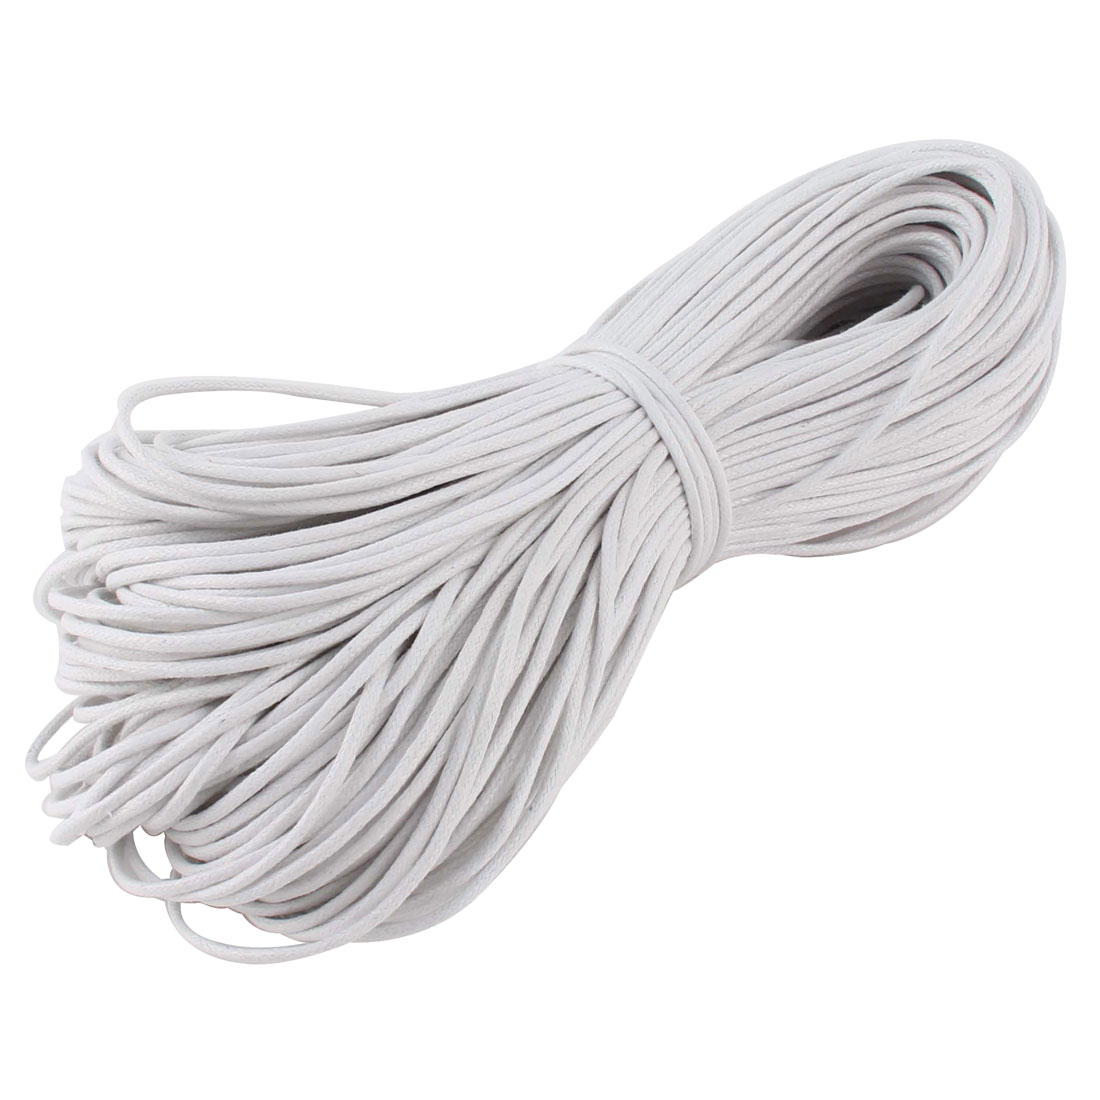 DIY Bracelet Necklace Waxed Cotton Making String Beading Thread Cord White 2mm 87.5 Yard